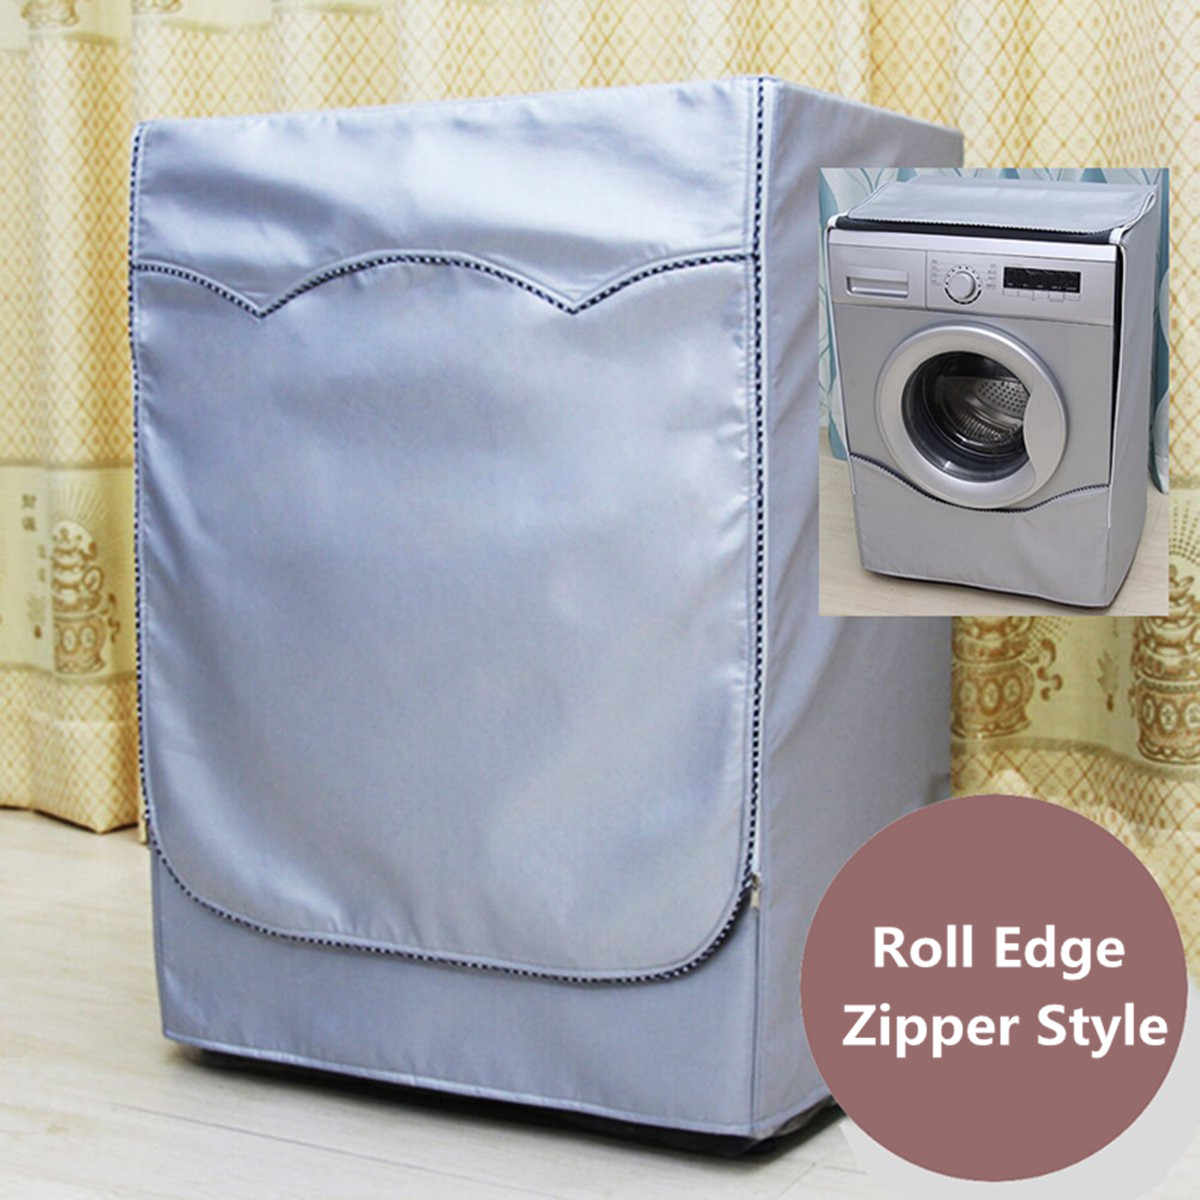 Fully Automatic Roller Washer Sunscreen Washing Machine Waterproof Cover Dryer Polyester Dustproof Washing Machine Cover